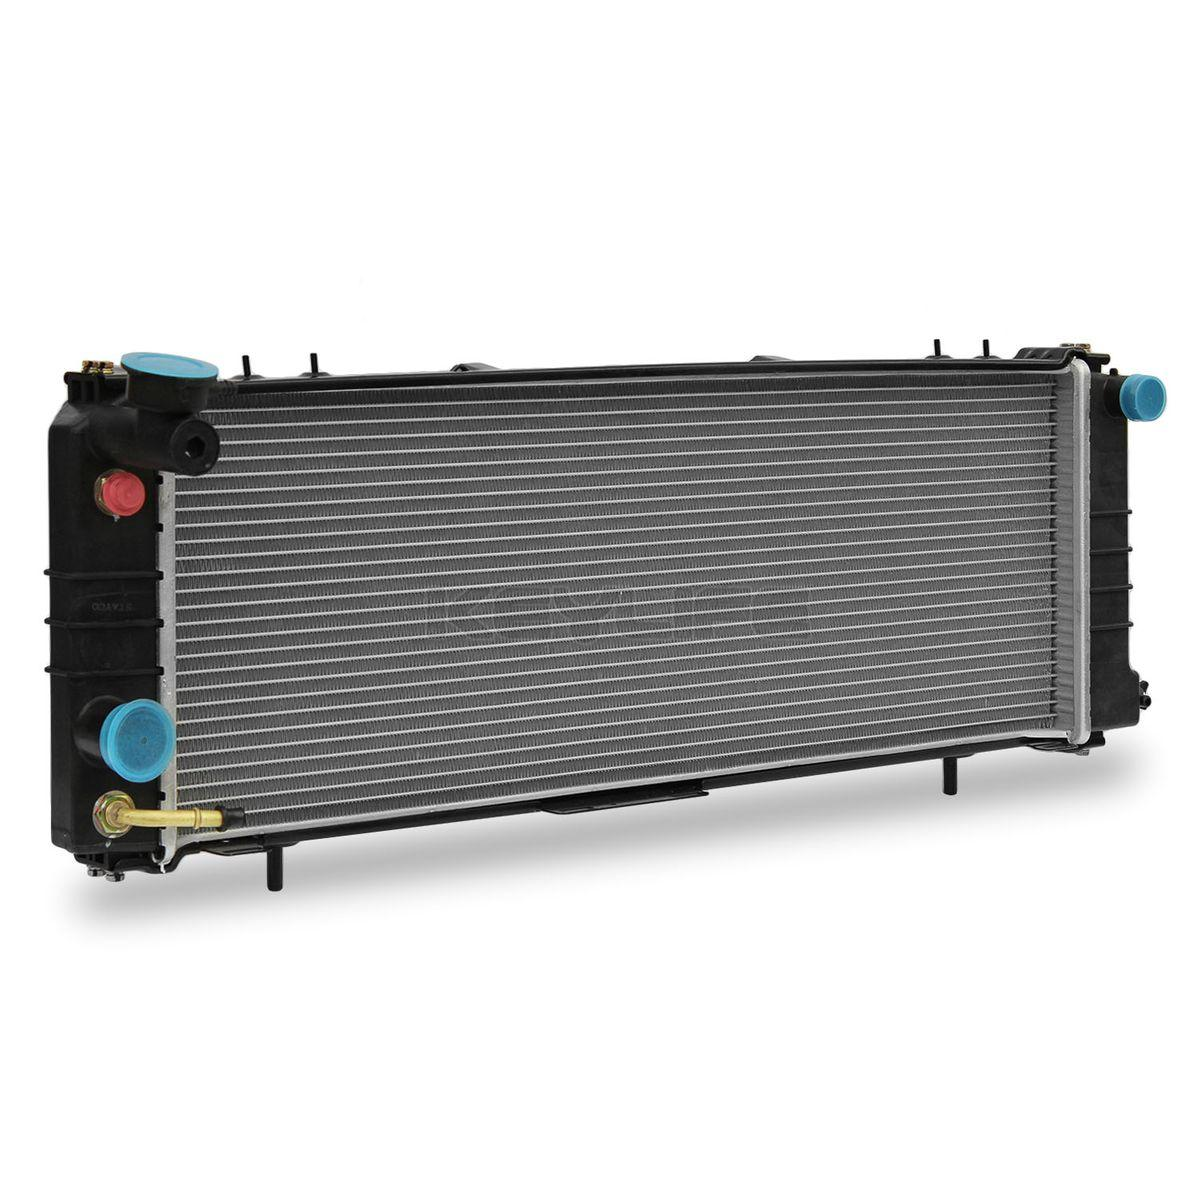 stayco radiator for 1991 1992 jeep cherokee comanche 4 0 l6 ebay. Black Bedroom Furniture Sets. Home Design Ideas